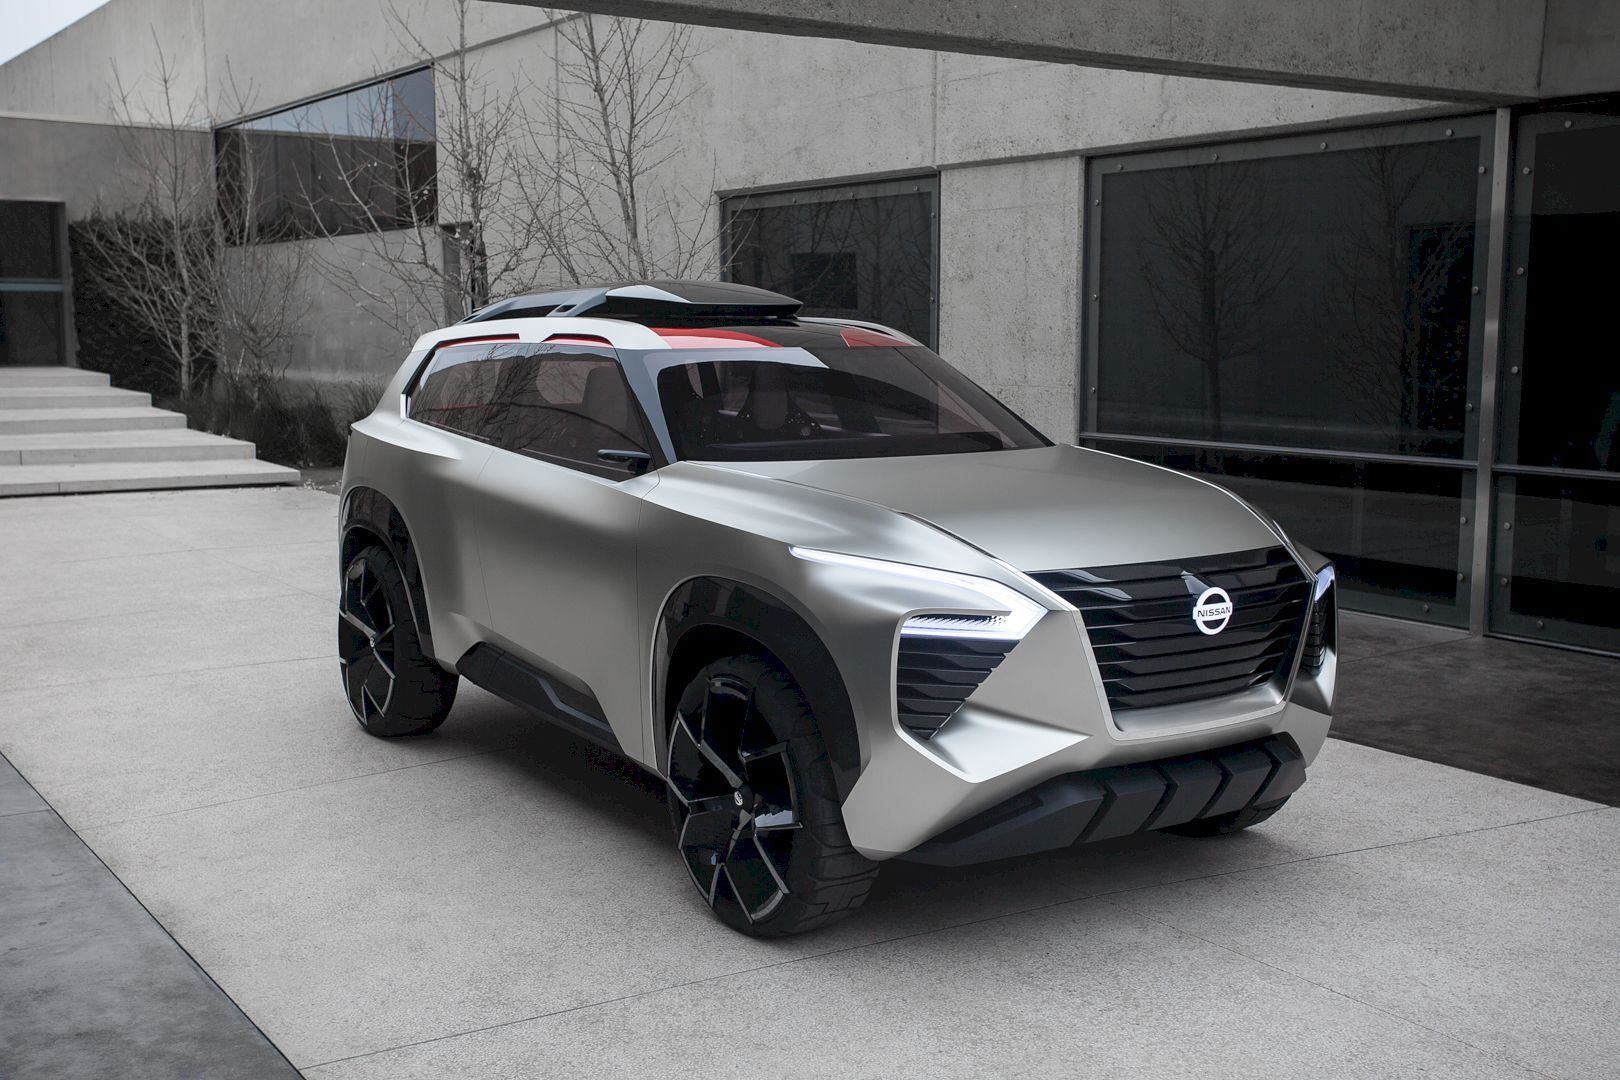 Nissan Xmotion Rule Out Any Doubt In Designing The Next Step Of Futuristic Suv Nissan Sport Utility Vehicle Car